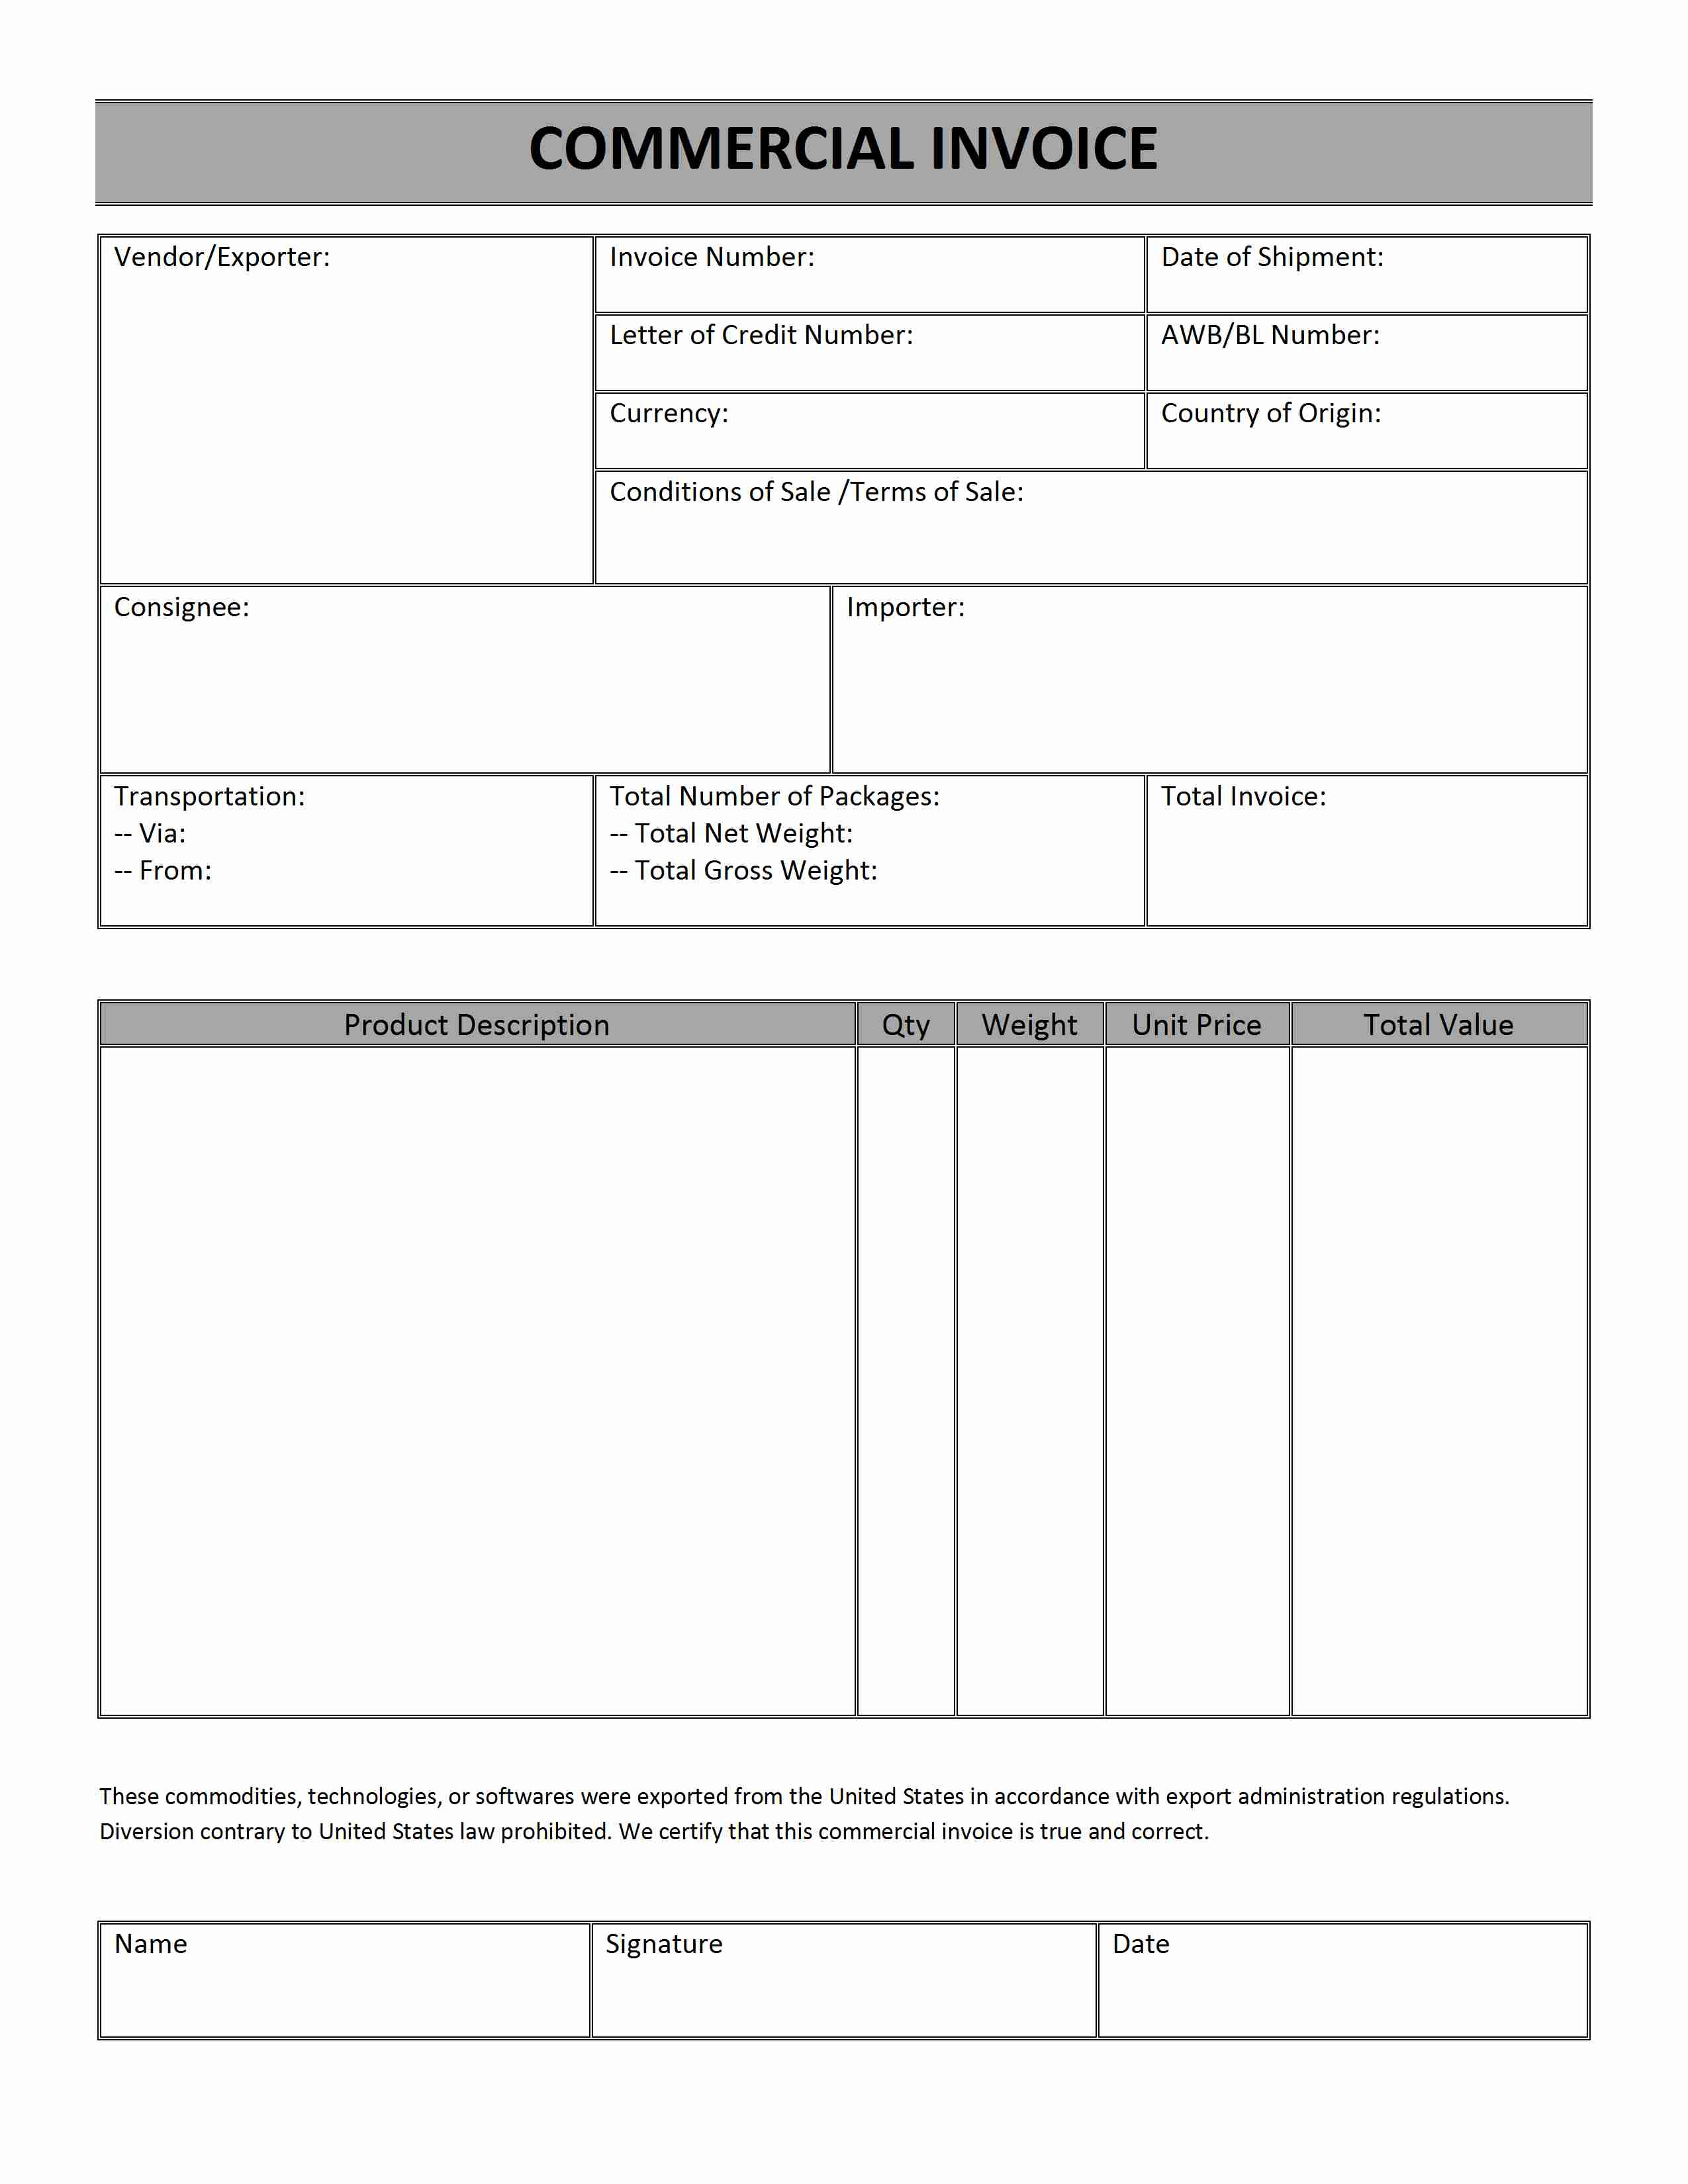 Hius  Winsome Printable Sales Invoice Simple Invoice Form Free Invoice  With Interesting Printable Receipt Free  Free Printable Raffle Tickets  Receipt   Printable With Attractive Invoice Excel Template Free Download Also Please Find Attached Invoice For Your In Addition Infiniti Q Invoice Price And Corporate Invoice Template As Well As Billing Invoice Format Additionally Tax Invoice Meaning From Happytomco With Hius  Interesting Printable Sales Invoice Simple Invoice Form Free Invoice  With Attractive Printable Receipt Free  Free Printable Raffle Tickets  Receipt   Printable And Winsome Invoice Excel Template Free Download Also Please Find Attached Invoice For Your In Addition Infiniti Q Invoice Price From Happytomco